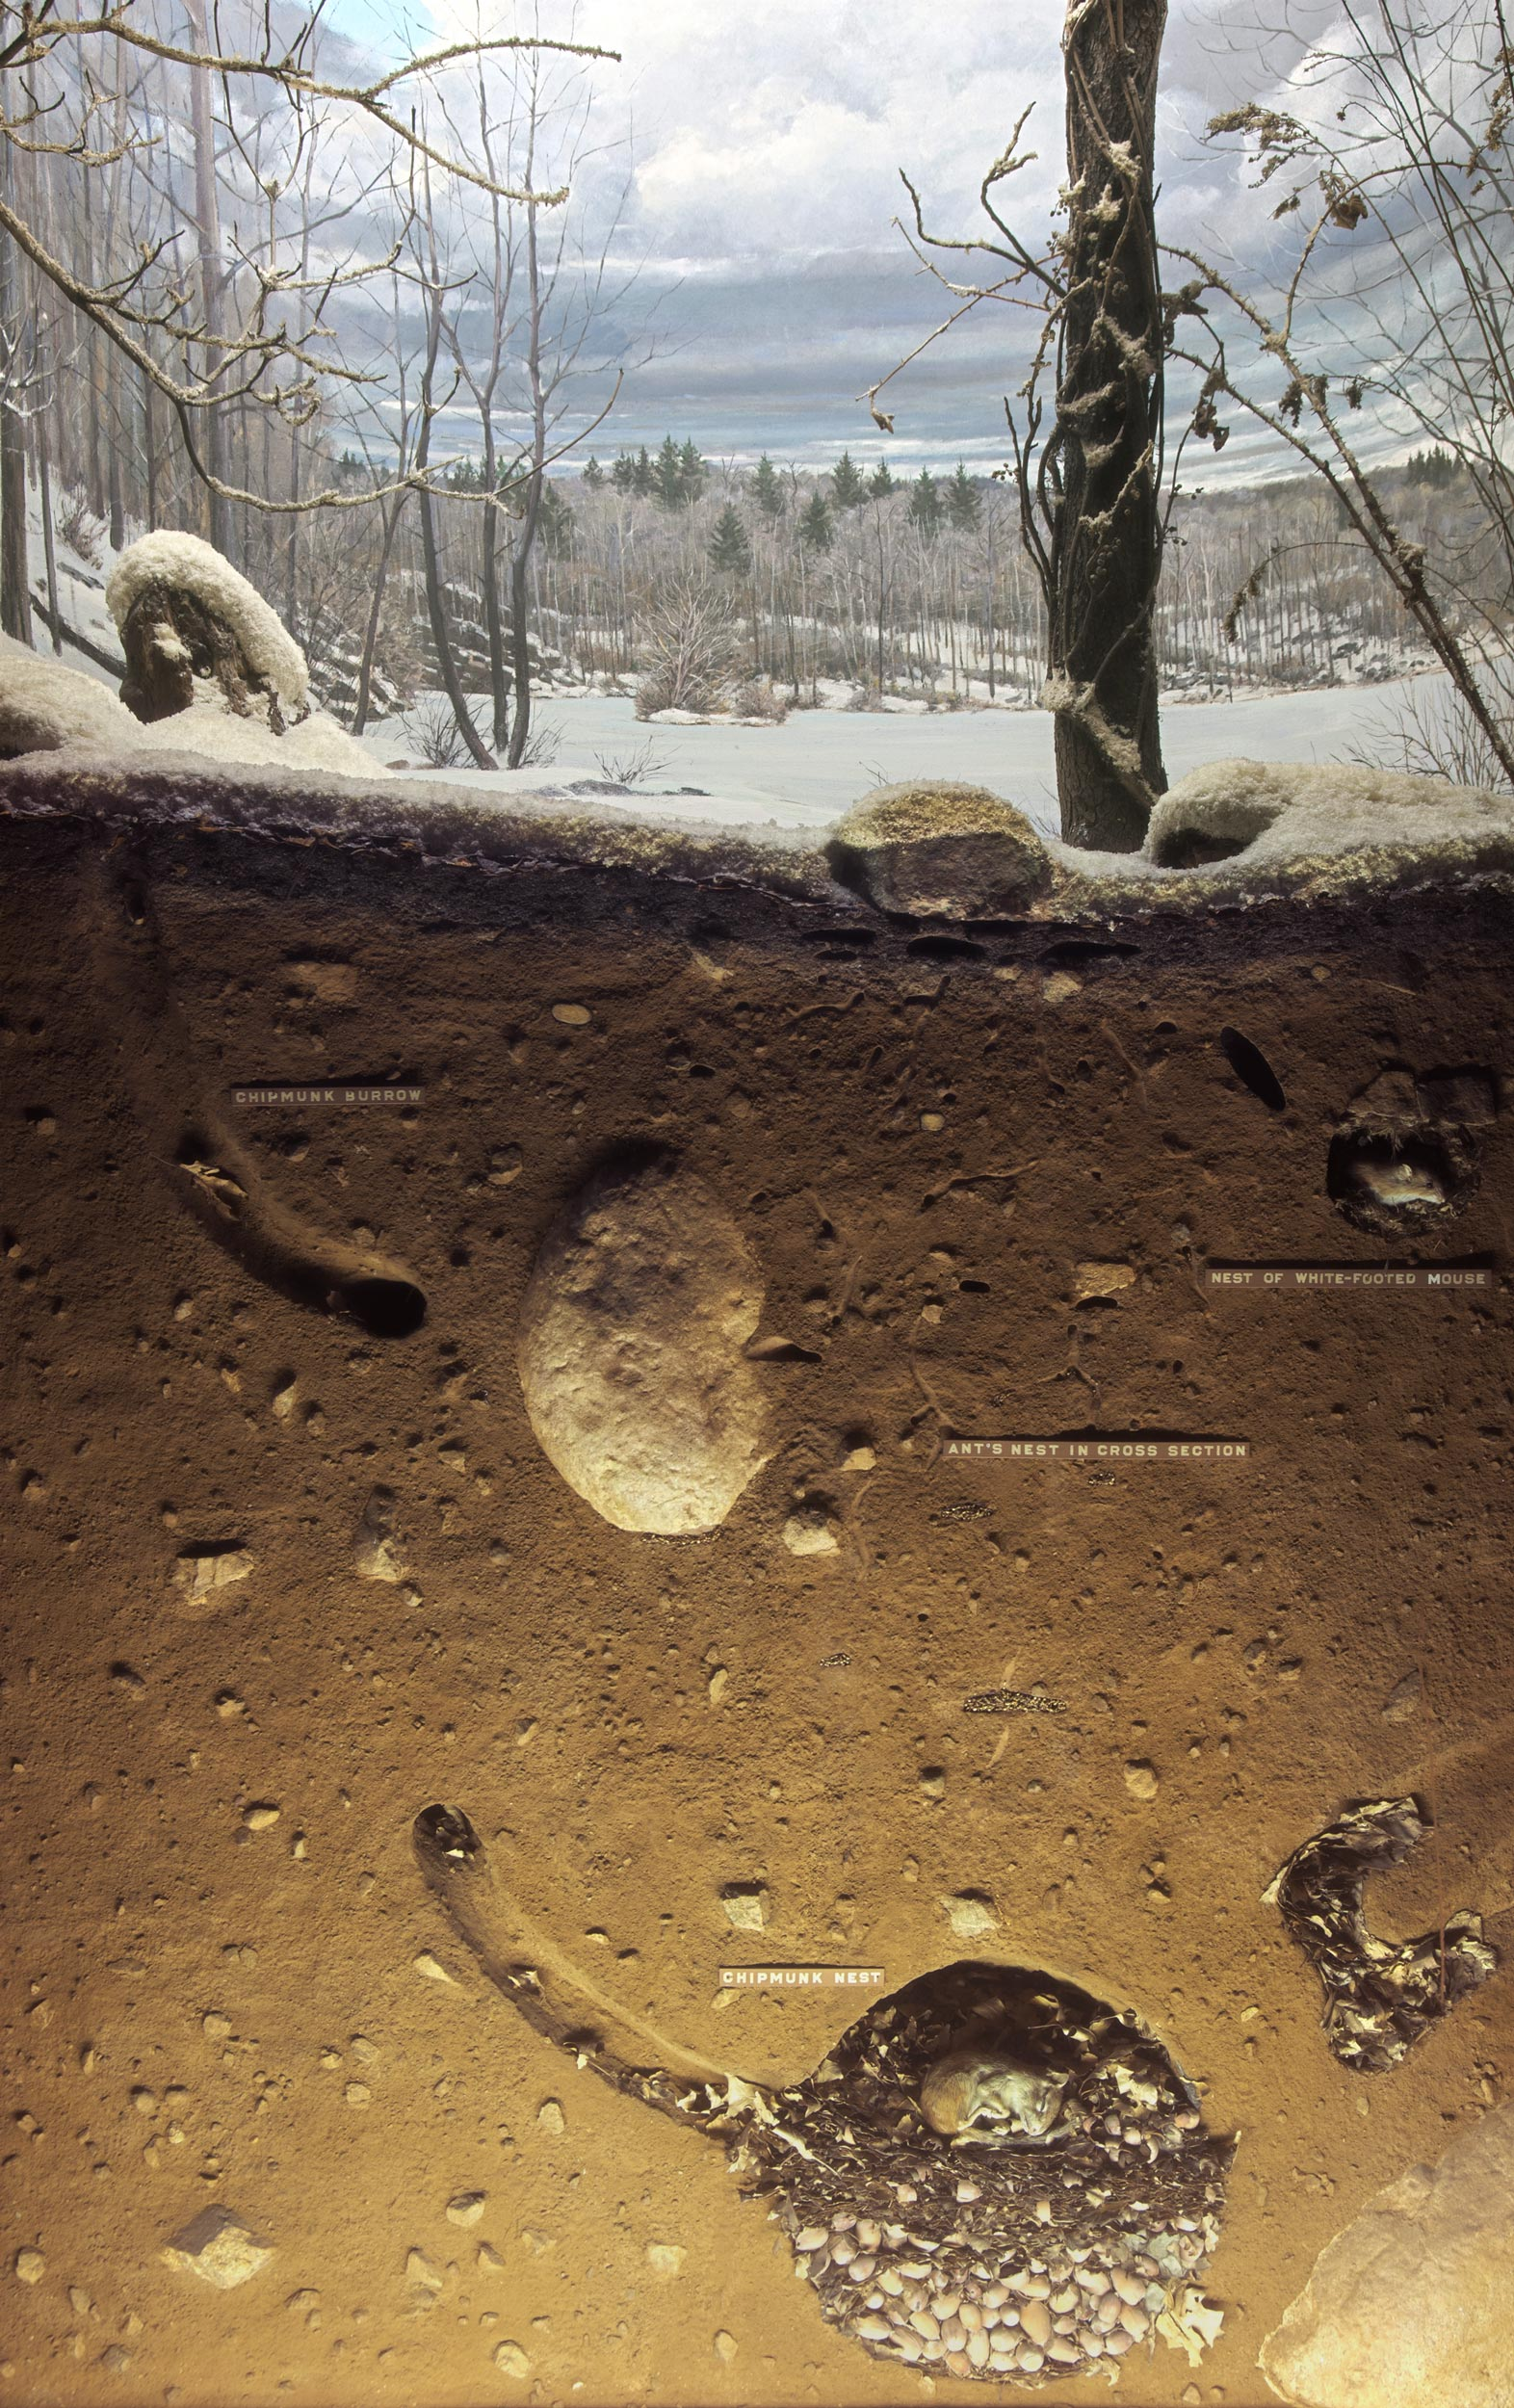 Diorama showing the landscape and cross section of the soil of the woodland during the winter season.